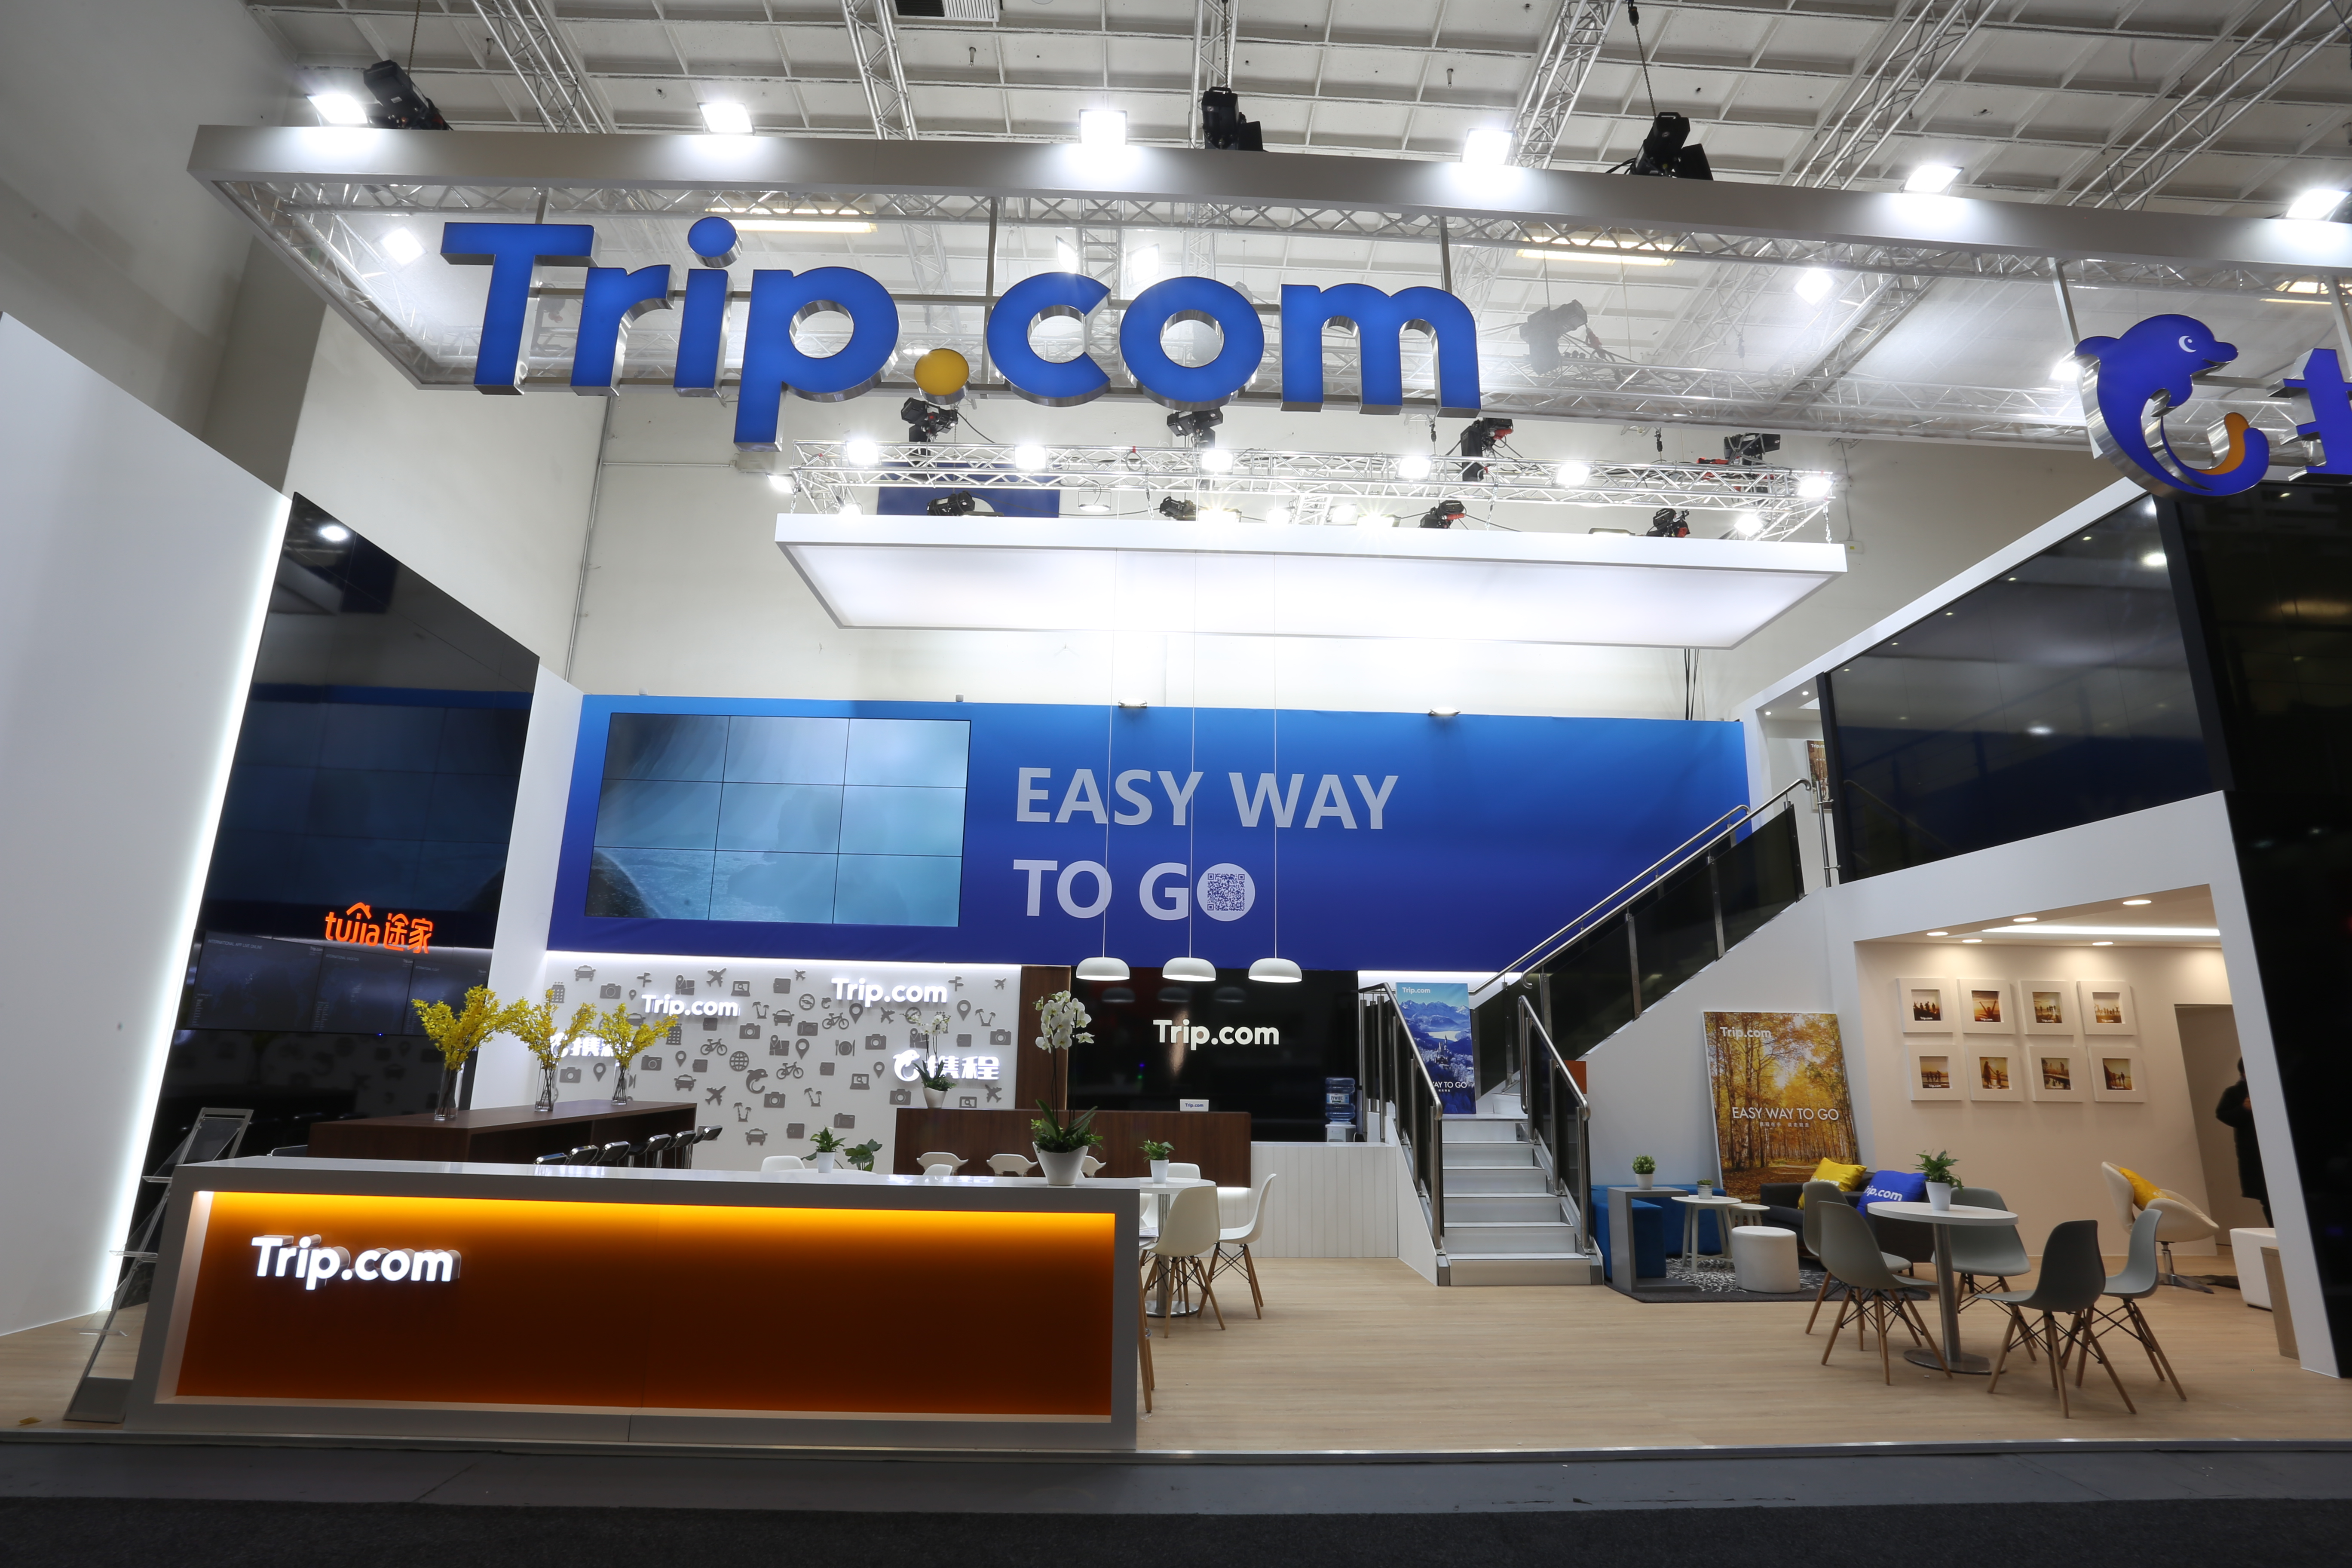 Trip.com Booth at ITB Berlin